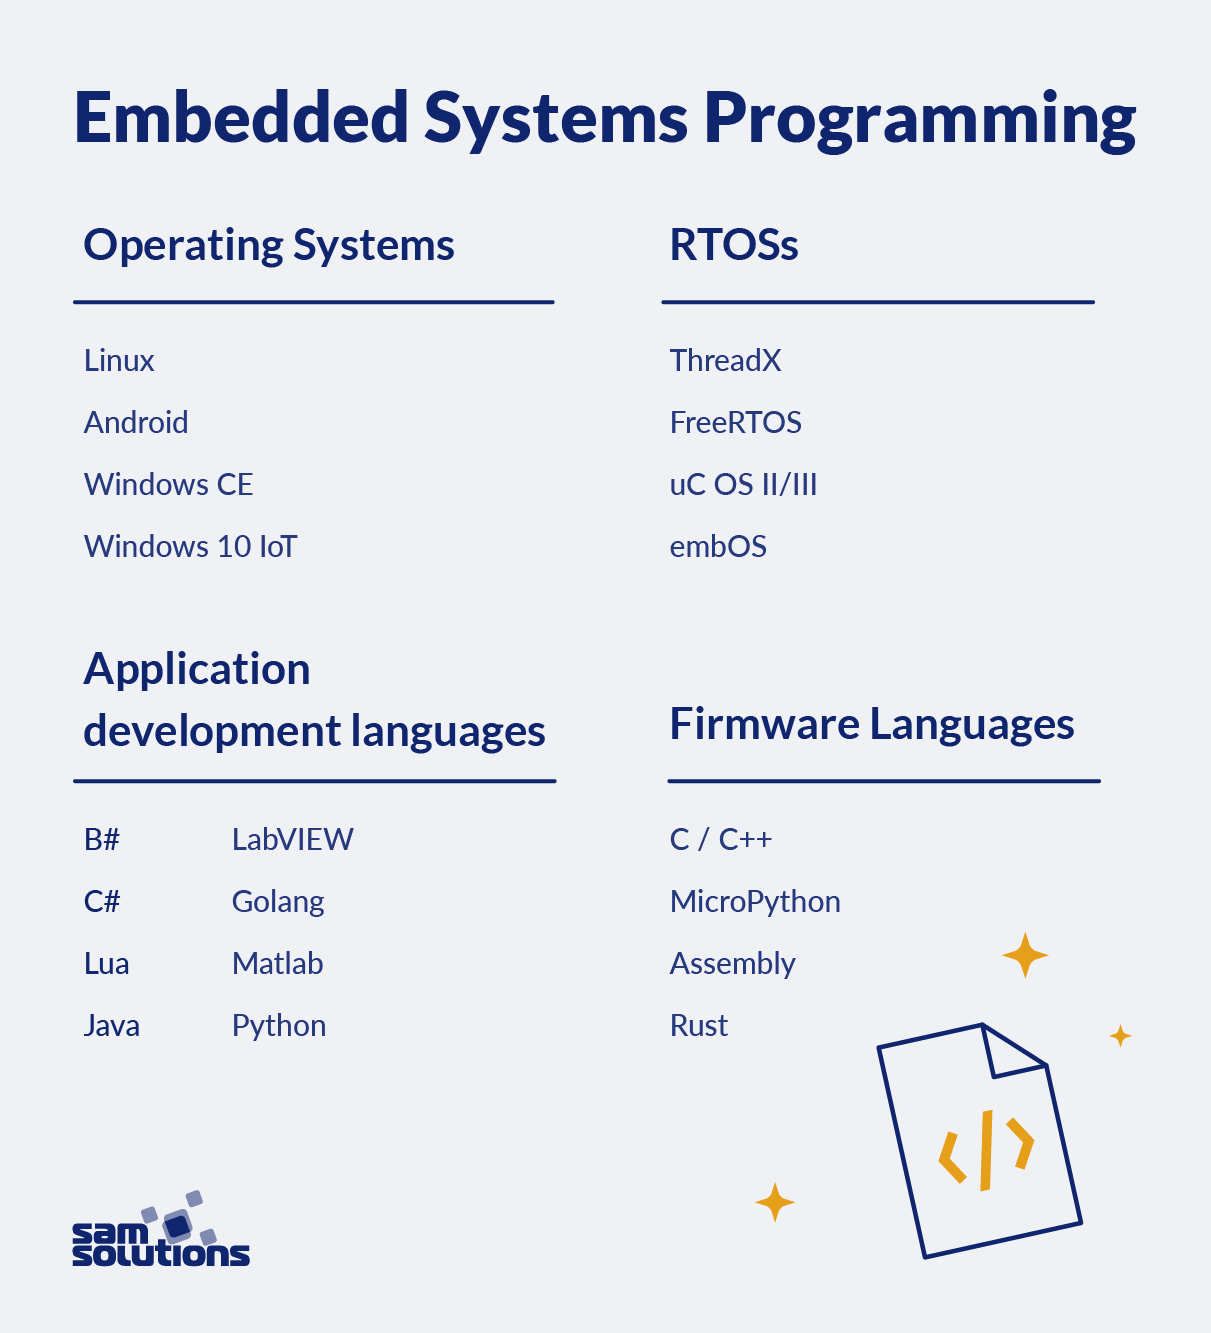 Embedded systems programming languages, platforms and RTOSs